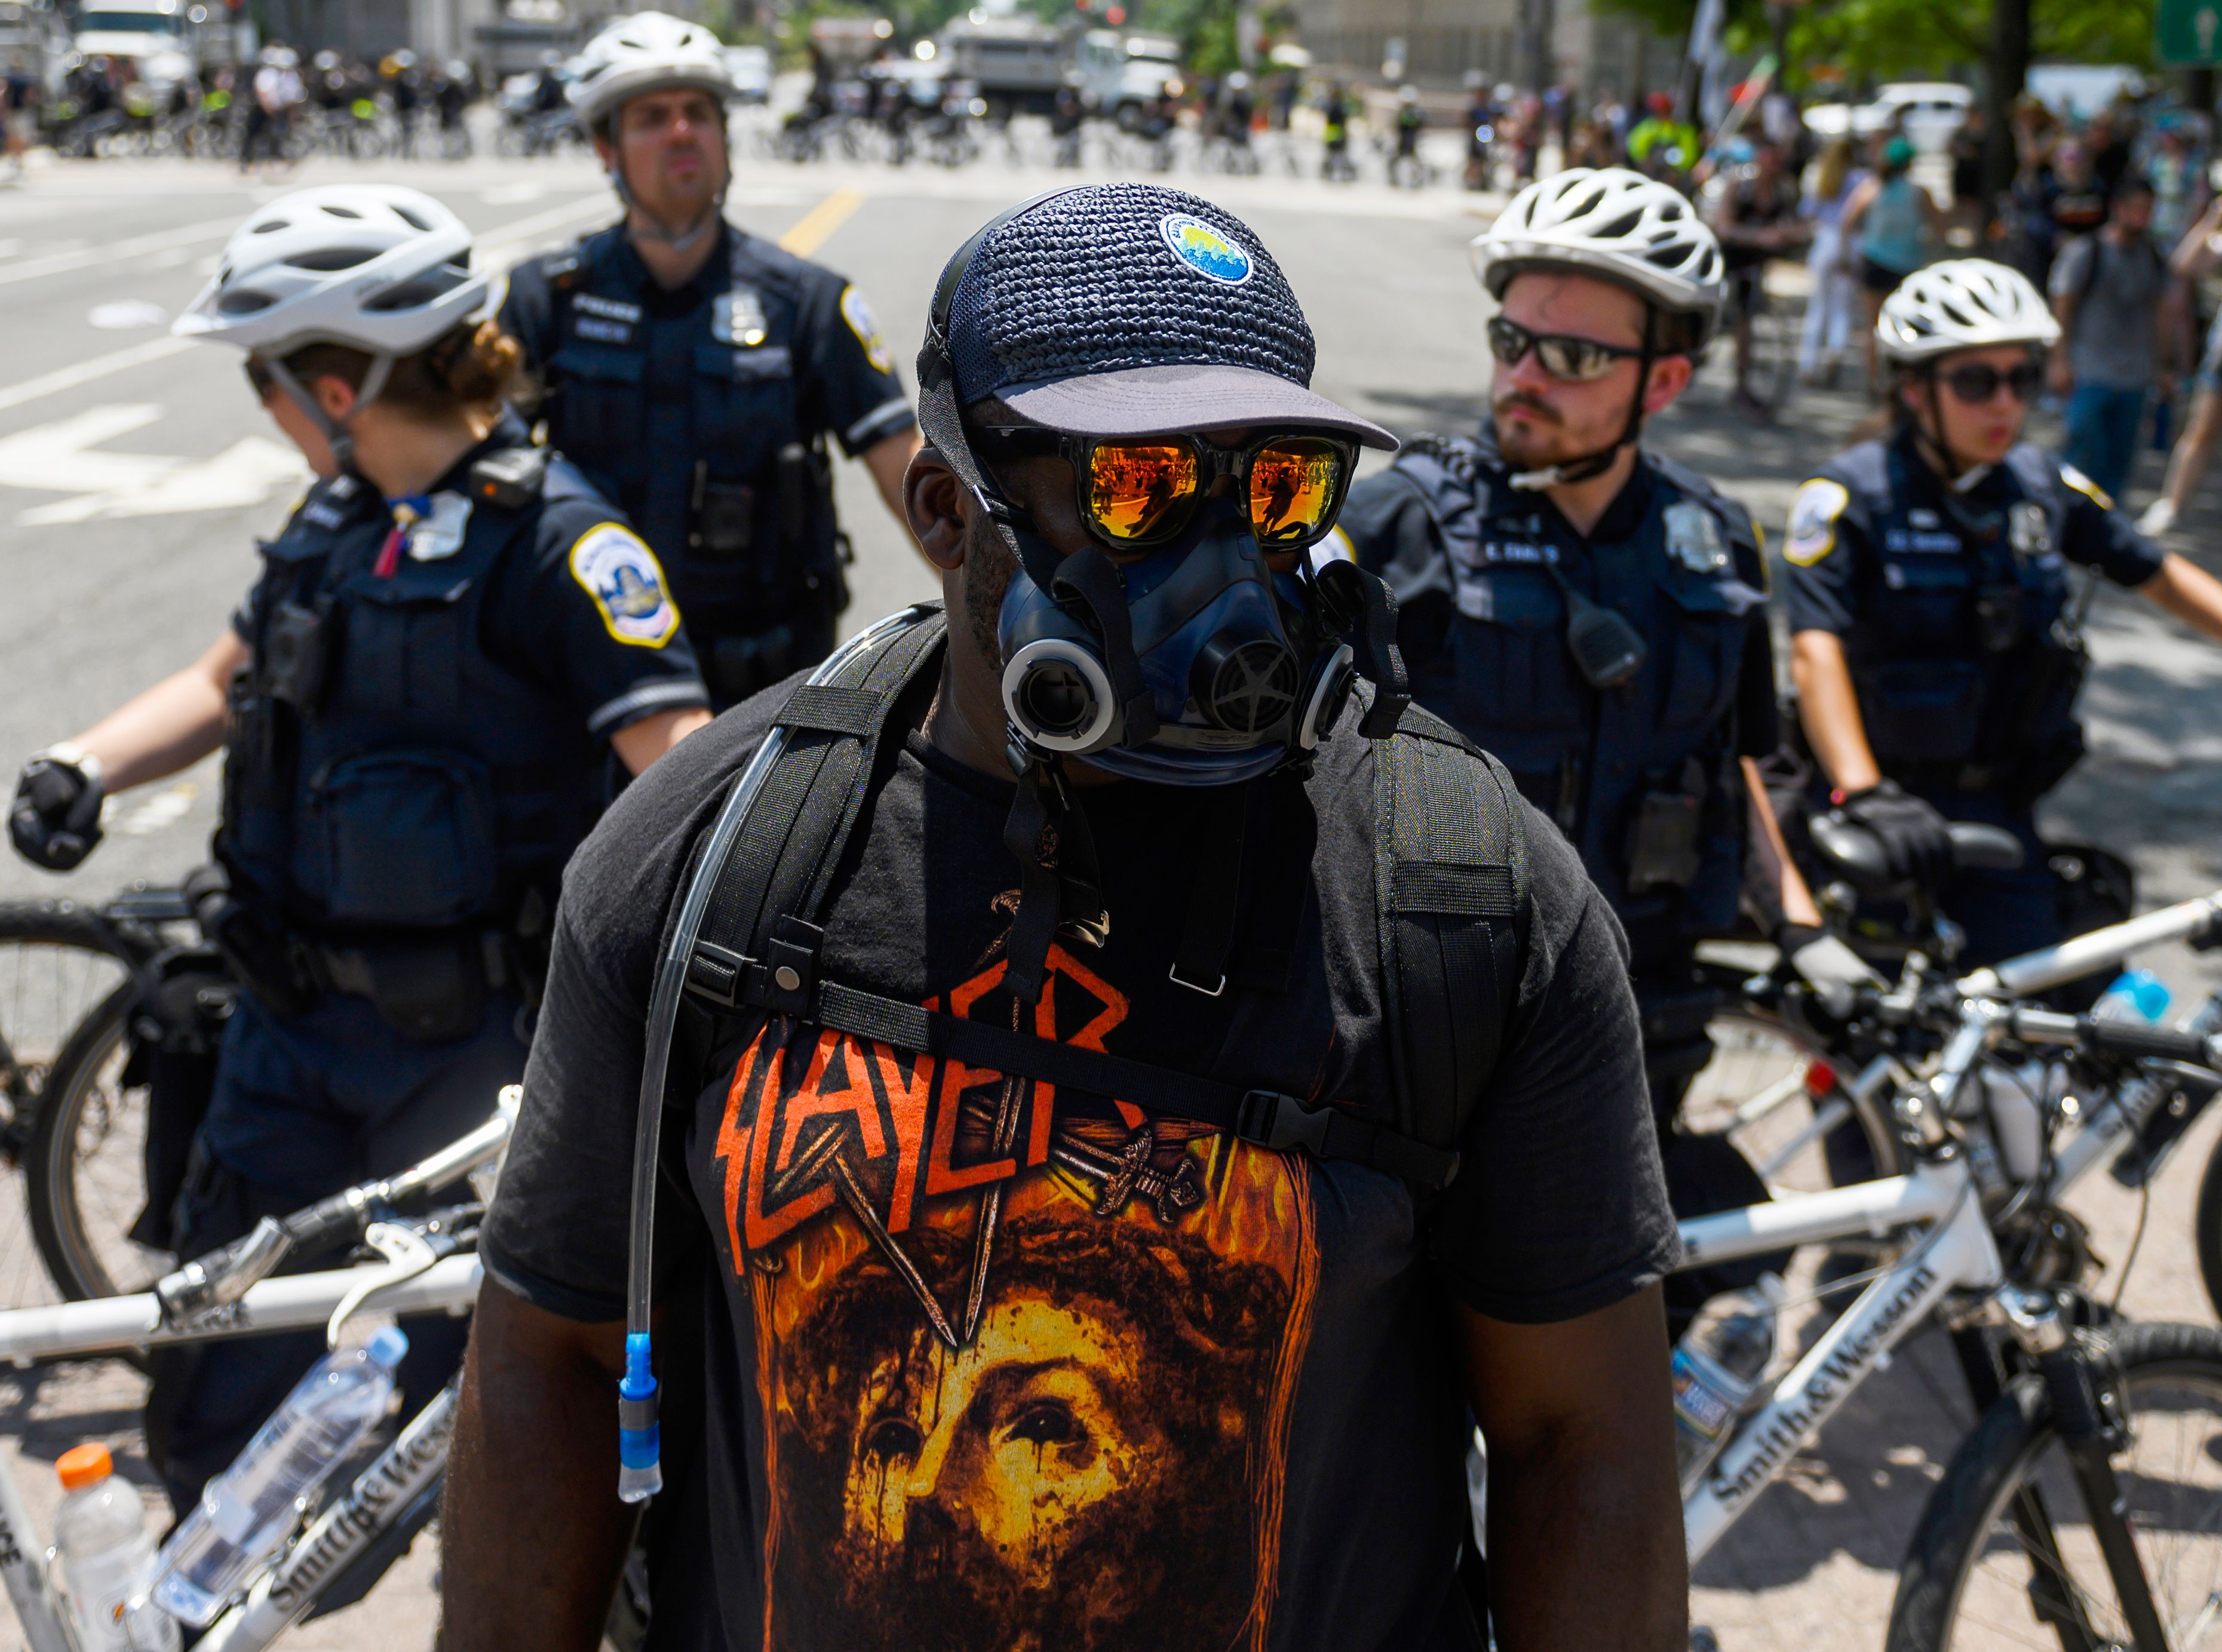 "A member of an anti-fascist or Antifa group stands in front of police as the Alt-Right movement gathers for a ""Demand Free Speech"" rally in Washington, DC, on July 6, 2019. (Photo by ANDREW CABALLERO-REYNOLDS / AFP) (Photo credit should read ANDREW CABALLERO-REYNOLDS/AFP/Getty Images)"